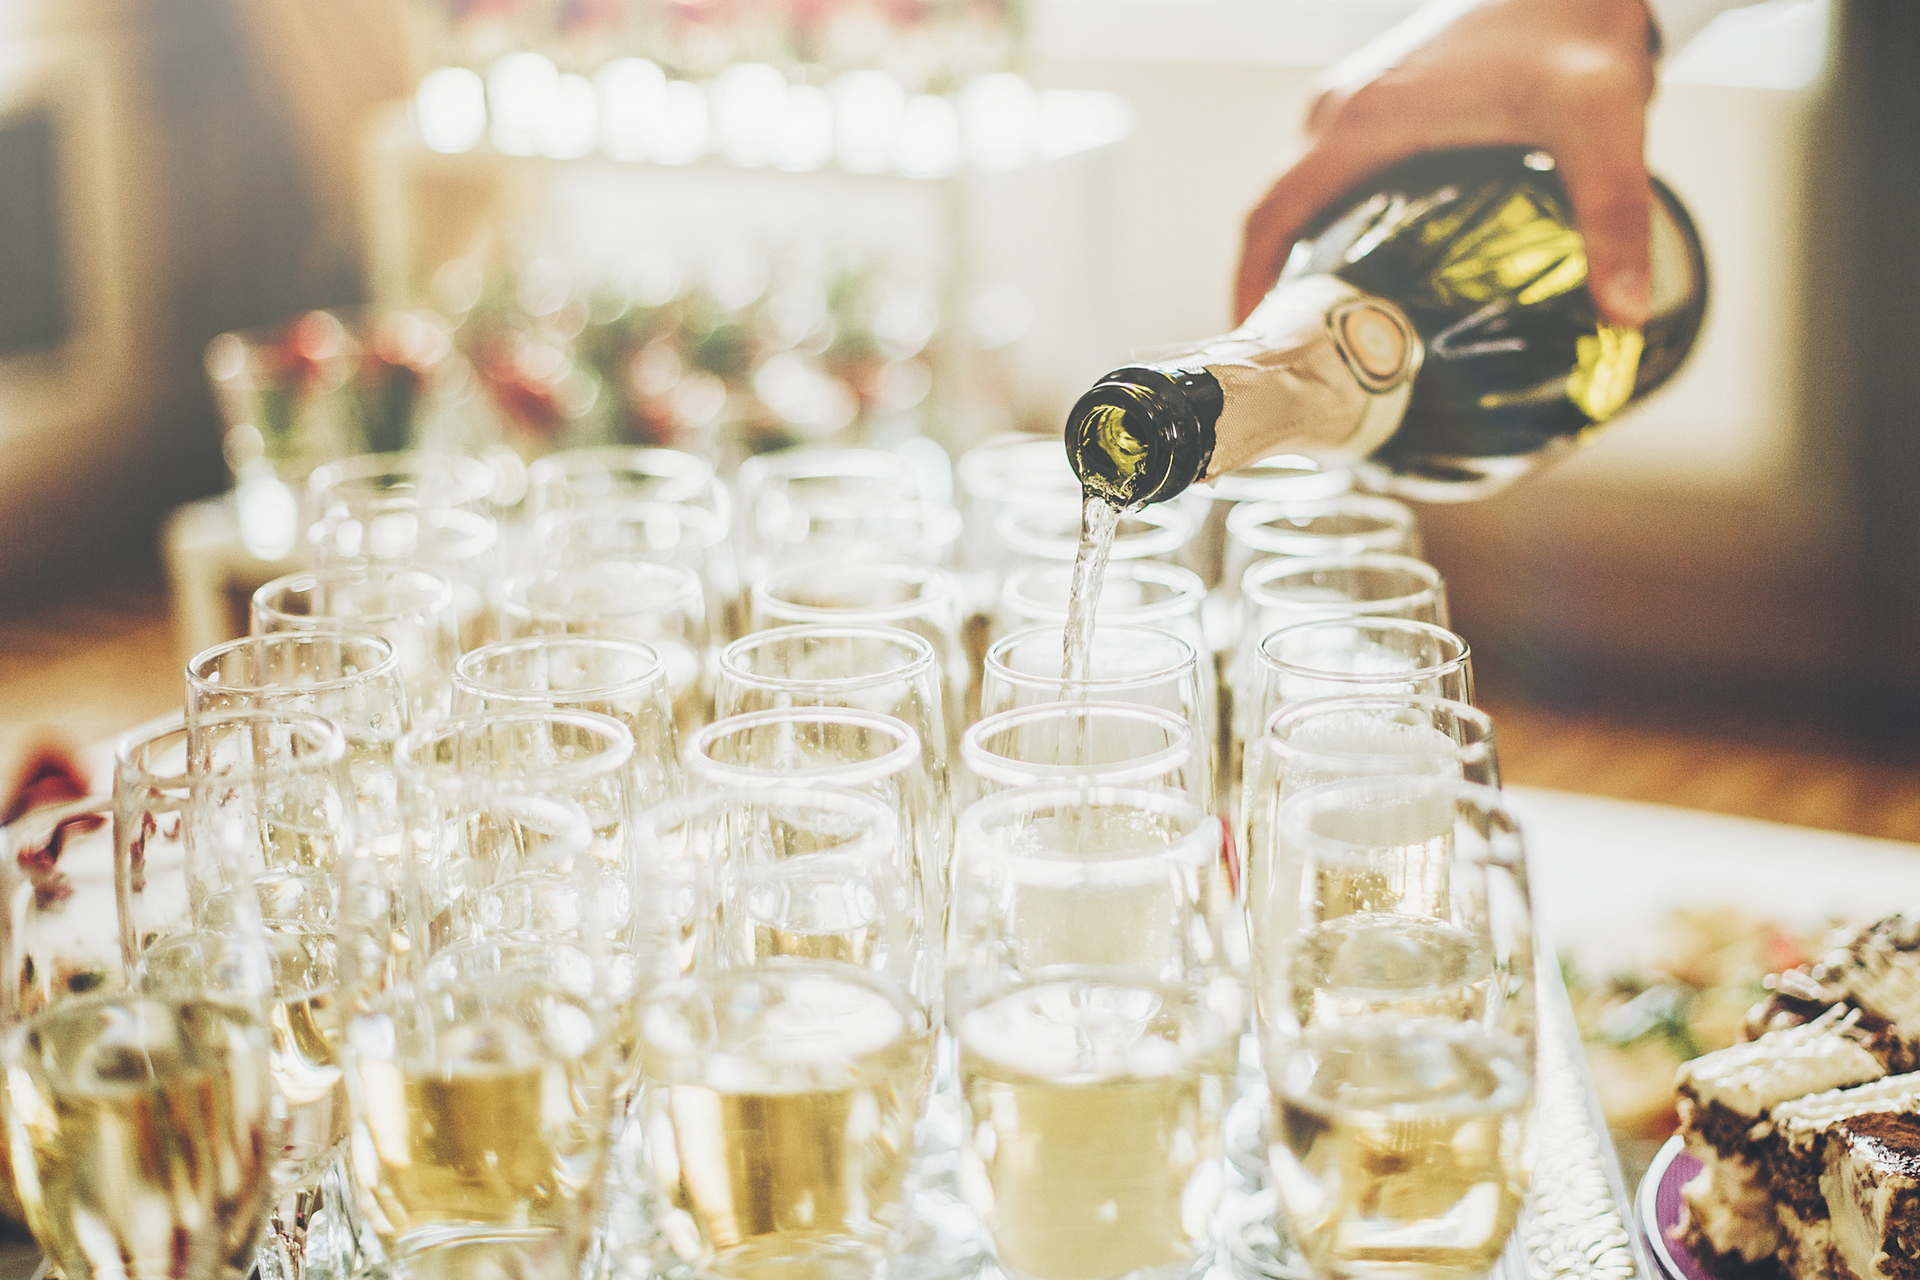 Bride slated for cash bar at wedding to pay back expenses